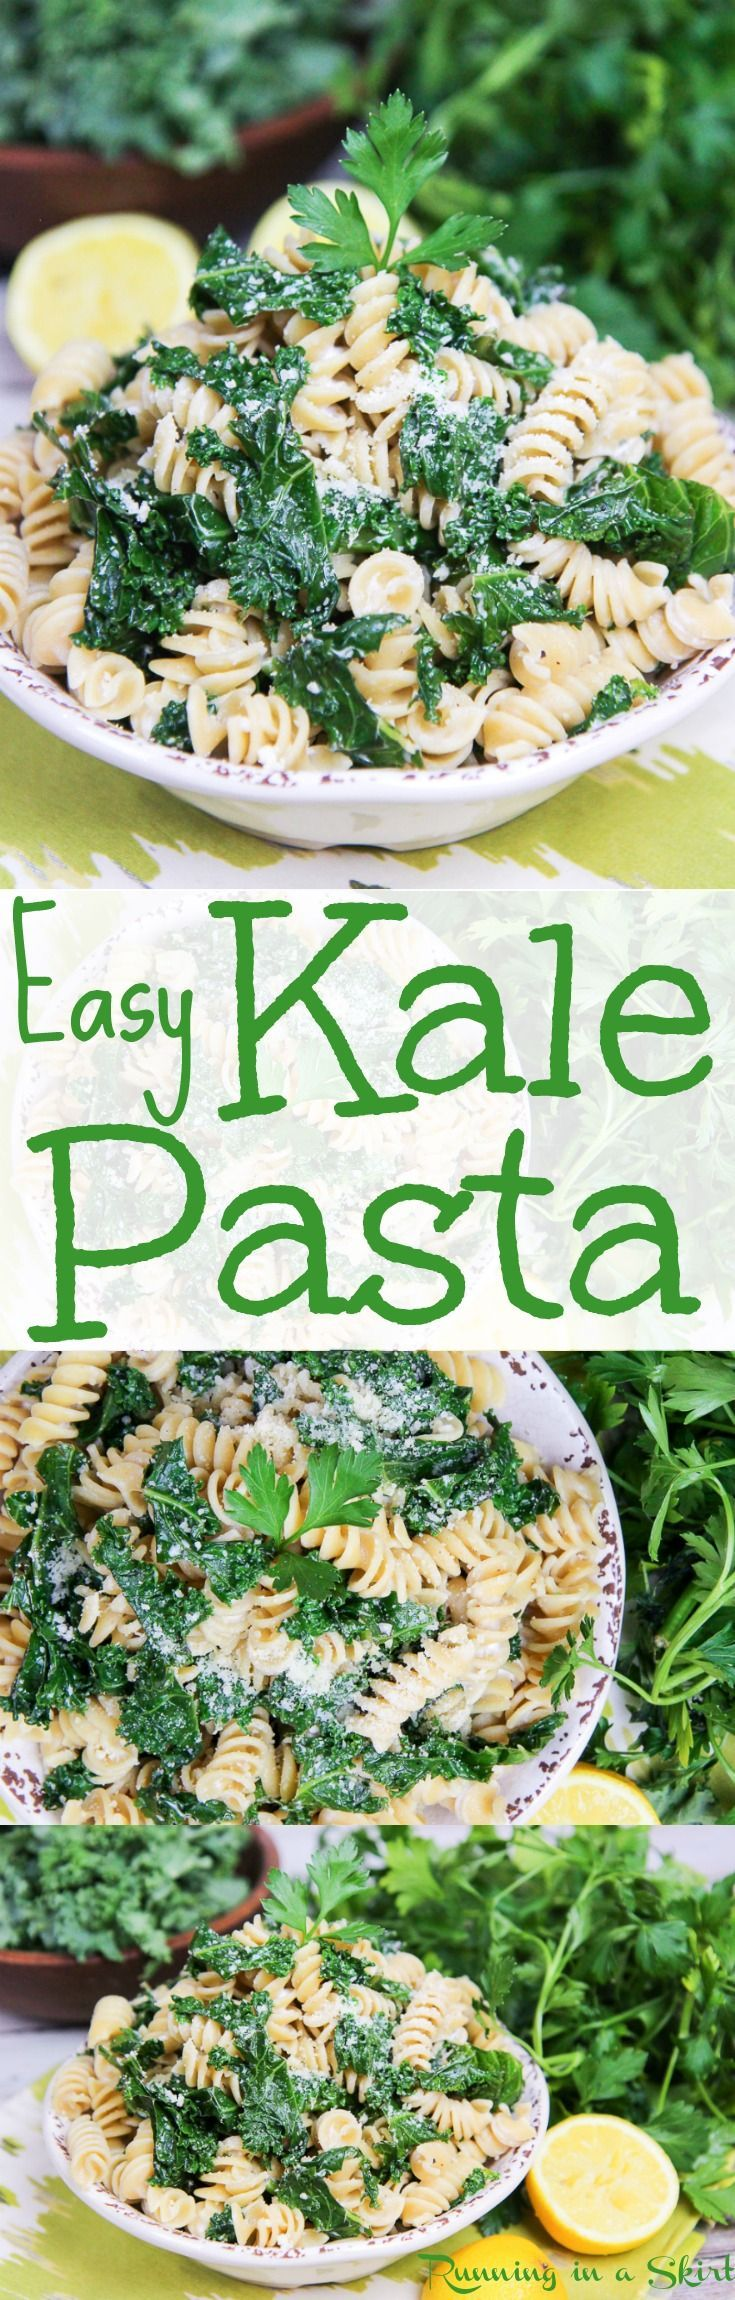 Easy & Healthy Lemon Kale Pasta recipe.  An easy vegetarian weekday dinner with a light slightly creamy sauce.  A homemade dish that is great for Meatless Monday and when you are craving comfort foods. Includes Parmesan cheese, greek yogurt and garlic.  Vegetarian with Vegan option. / Running in a Skirt